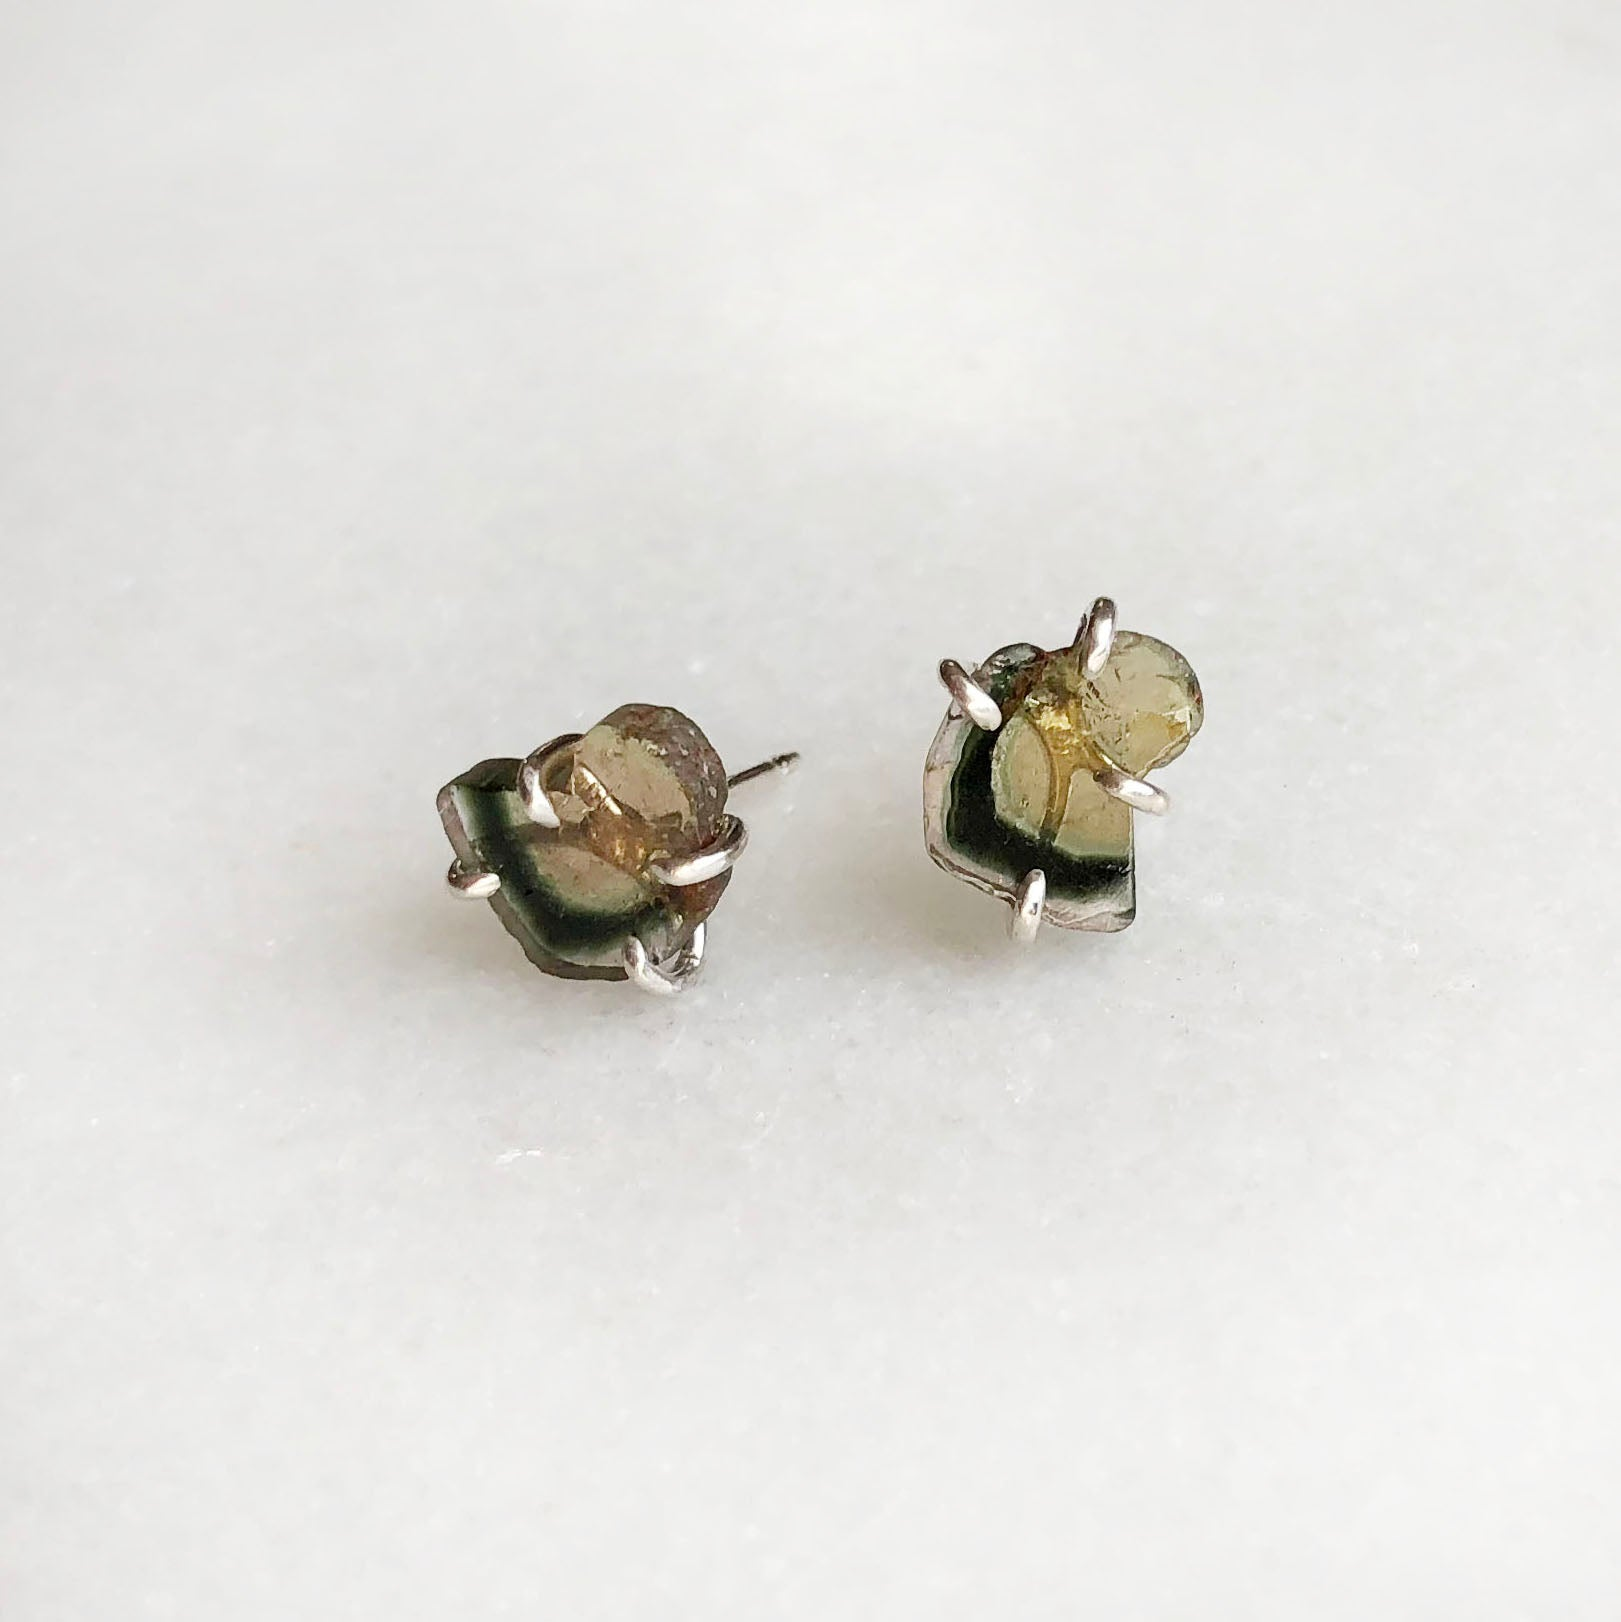 Yellow and Green Tourmaline Studs by Rockhaus Metals